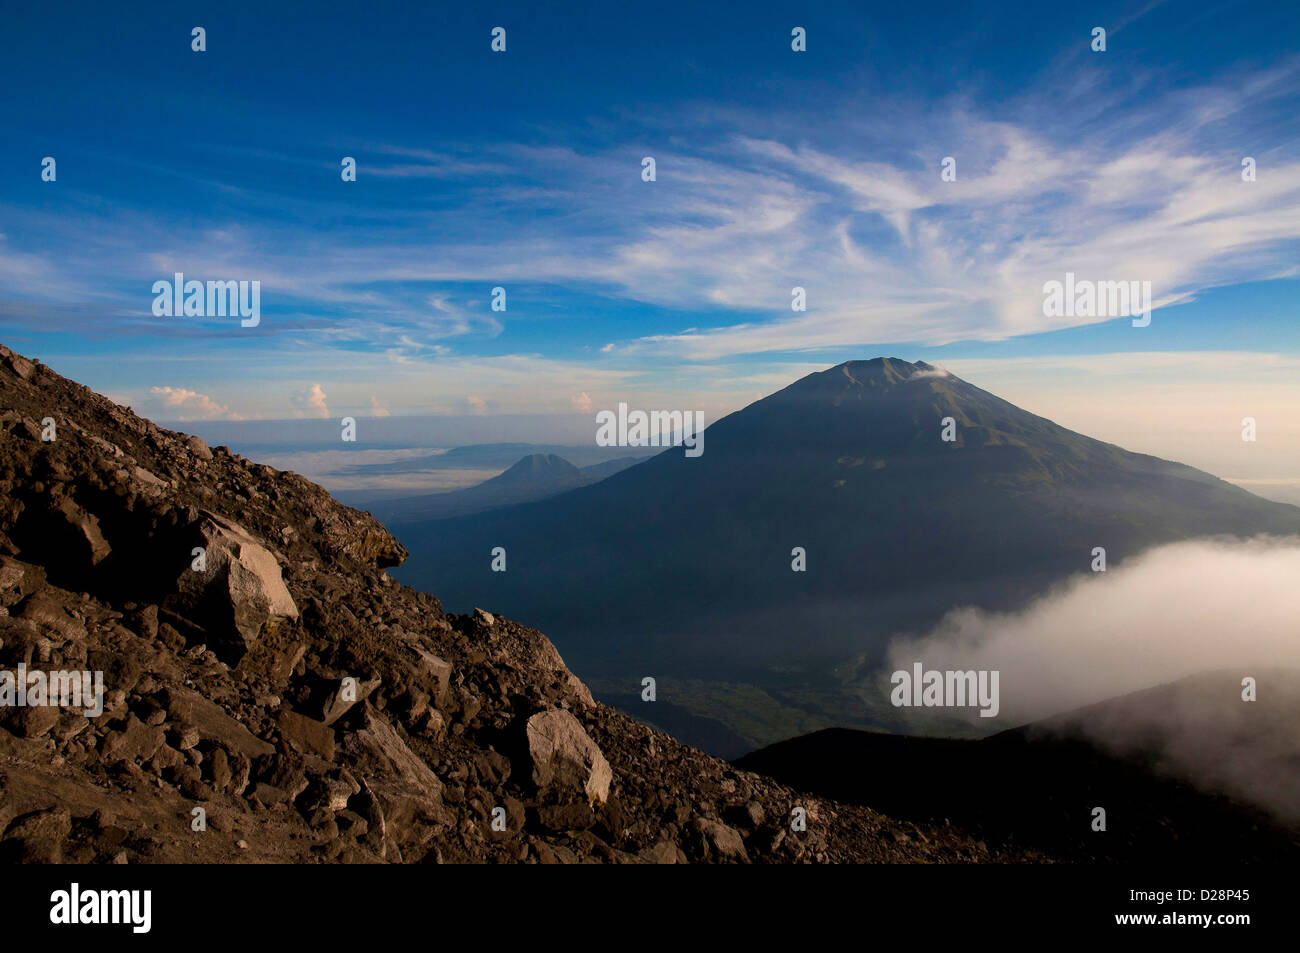 from the summit of mount Merapi the view of Mount Merbabu volcano, Central Java, Indonesia - Stock Image